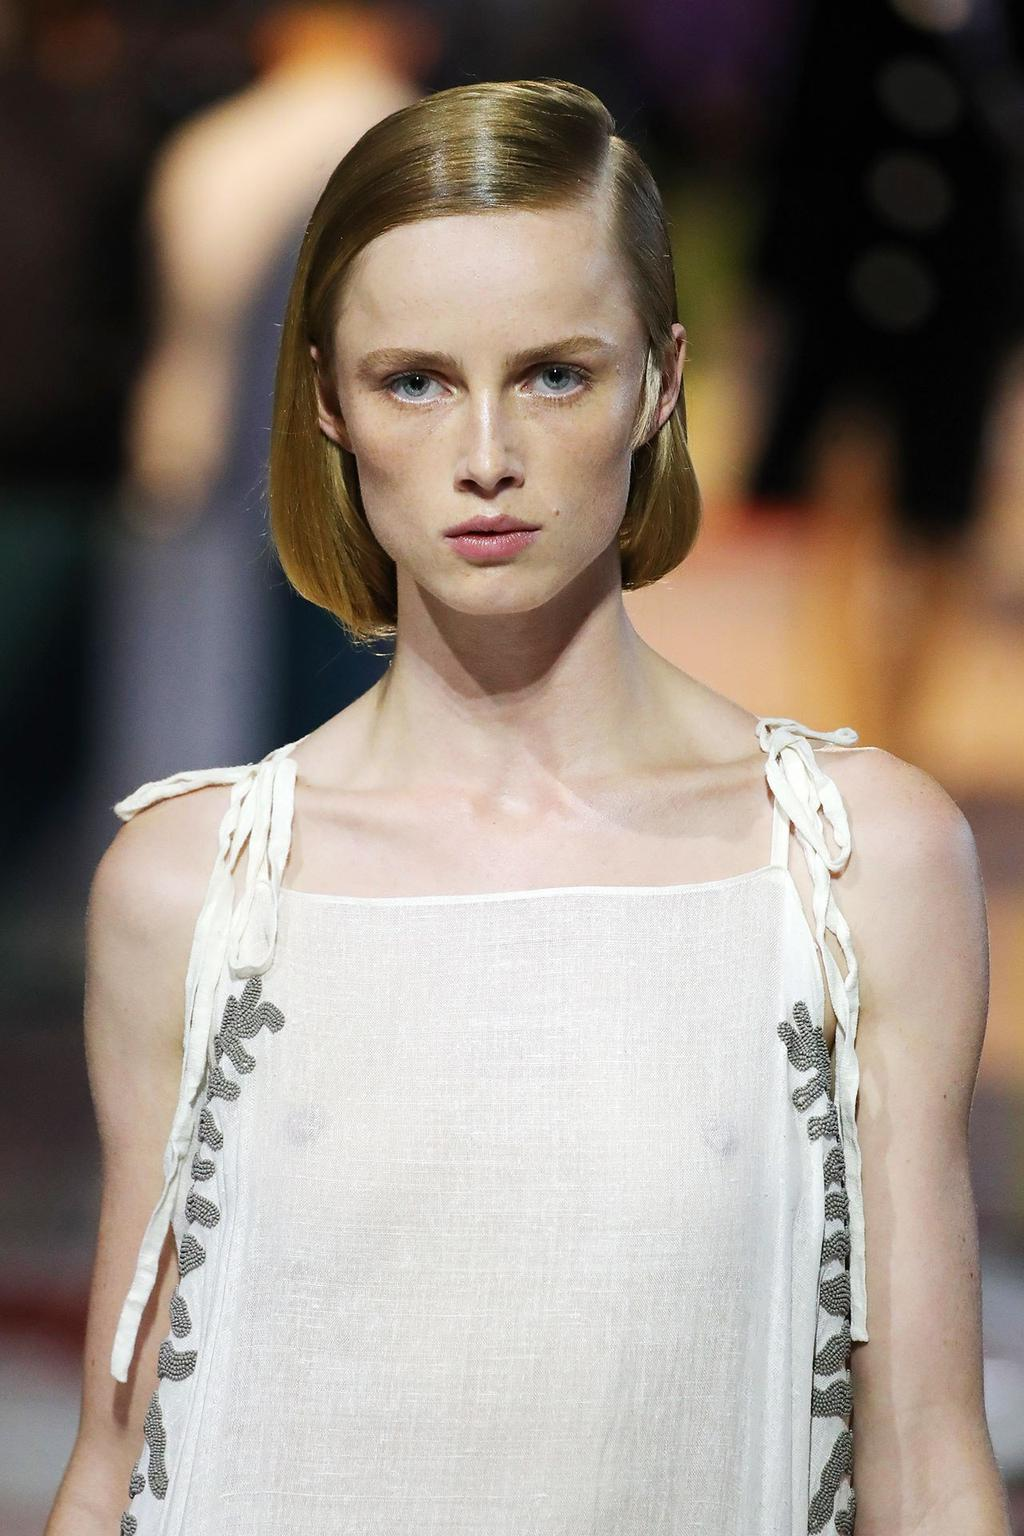 Summer Hair 2020.Everything To Know About Prada S Spring Summer 2020 Hair And